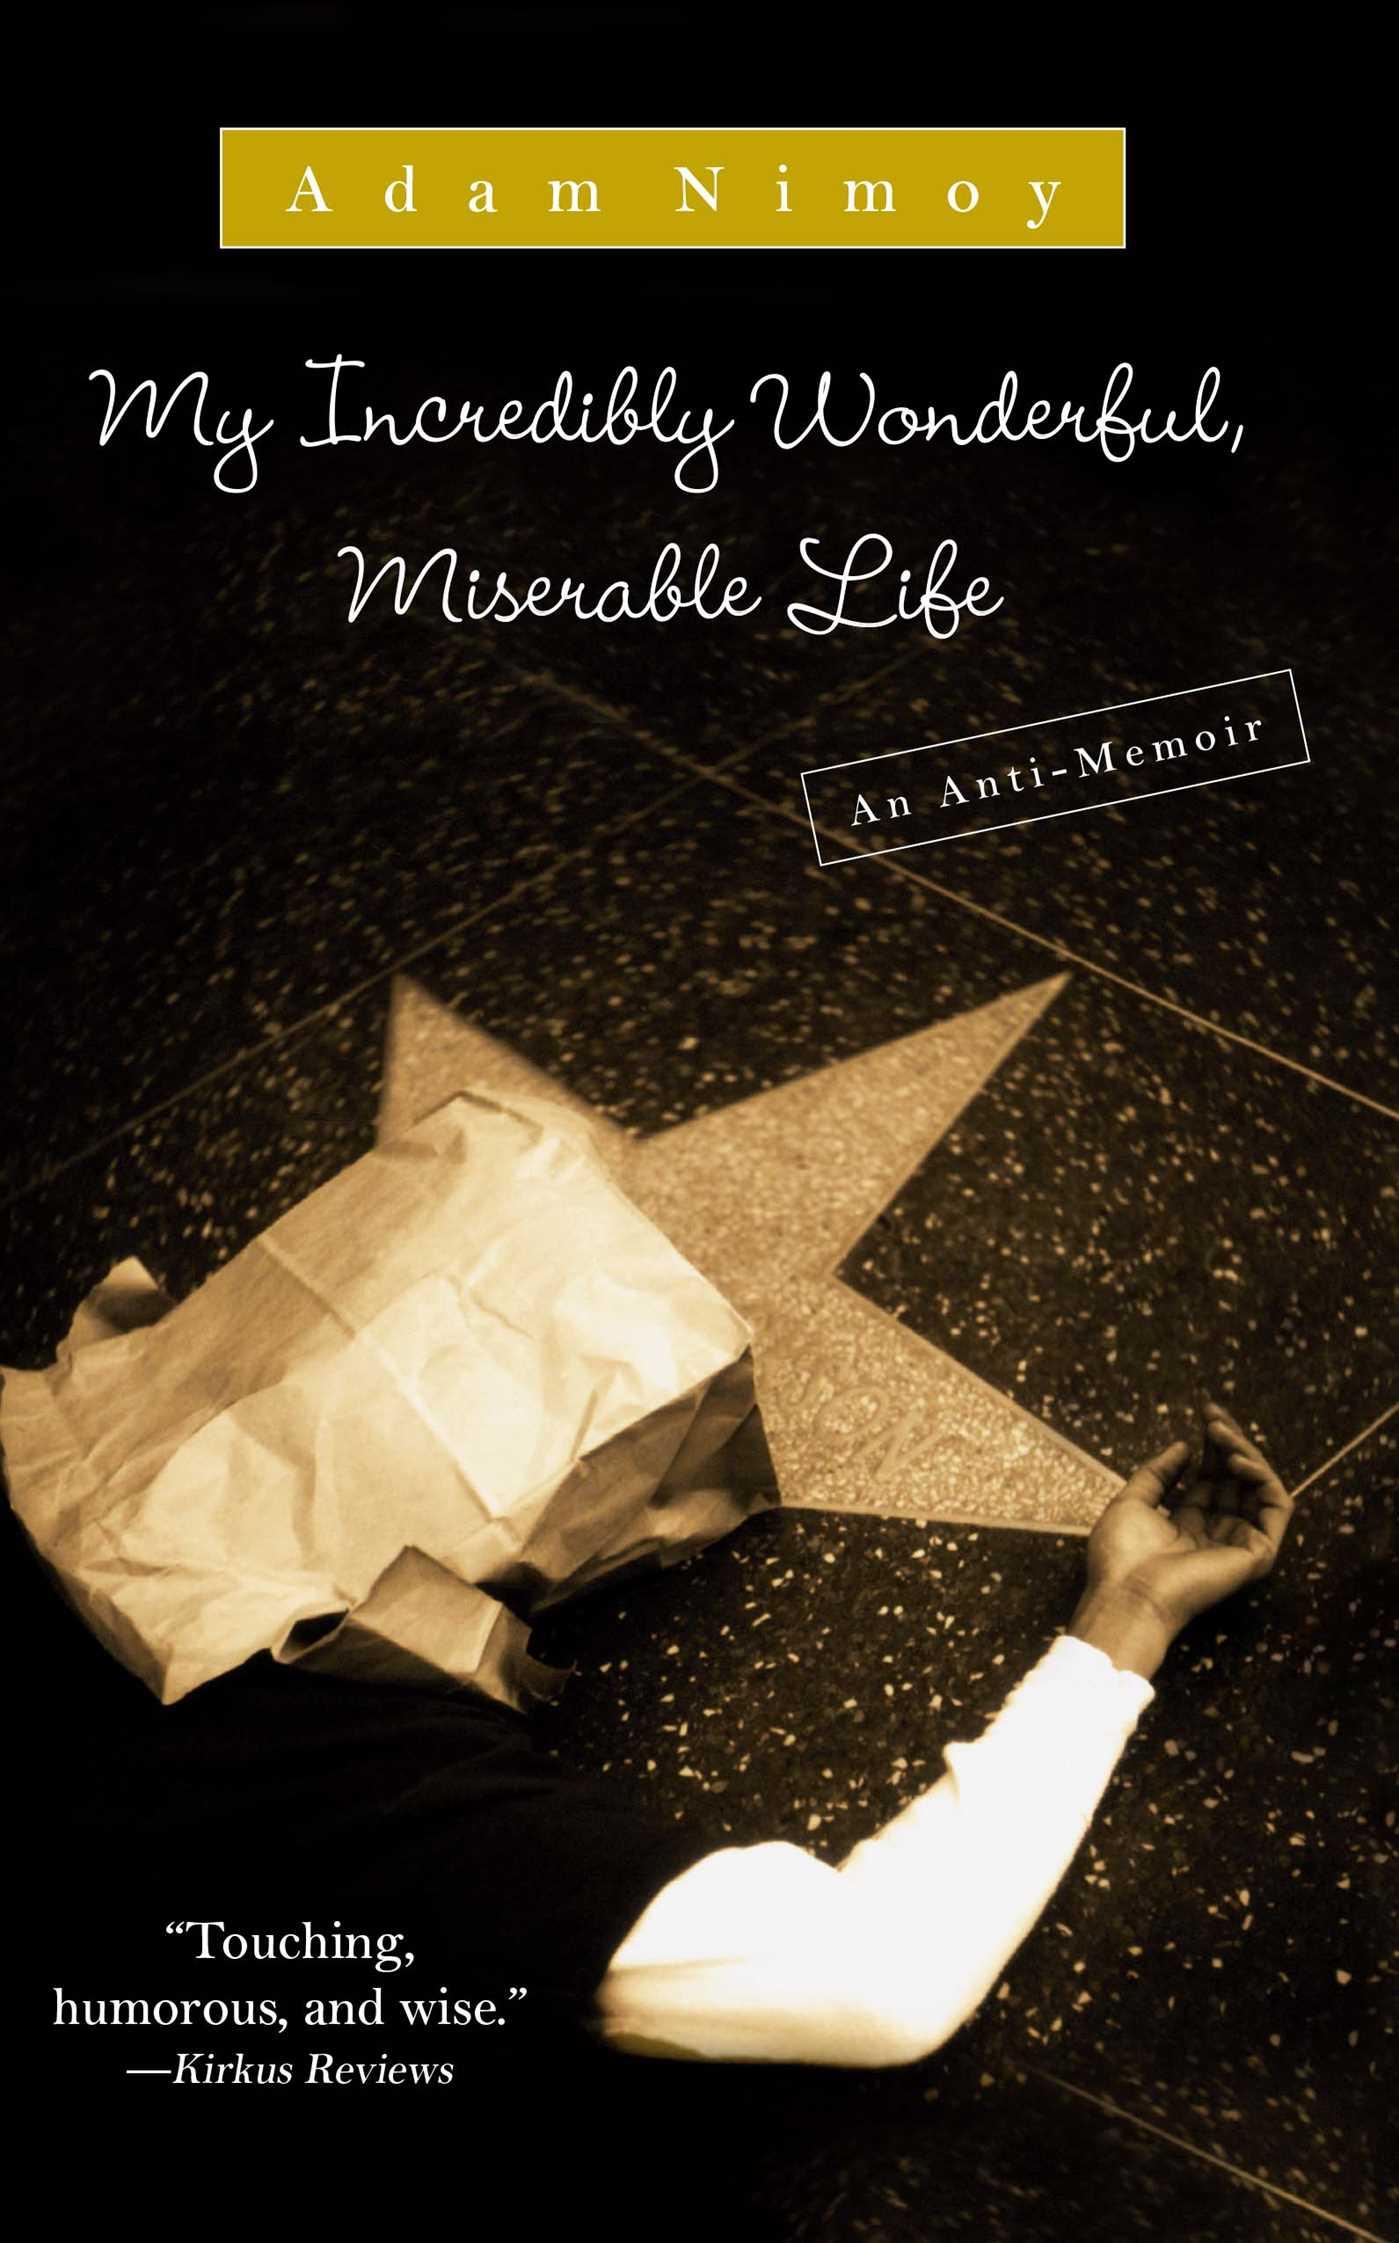 My incredibly wonderful miserable life 9781439125465 hr